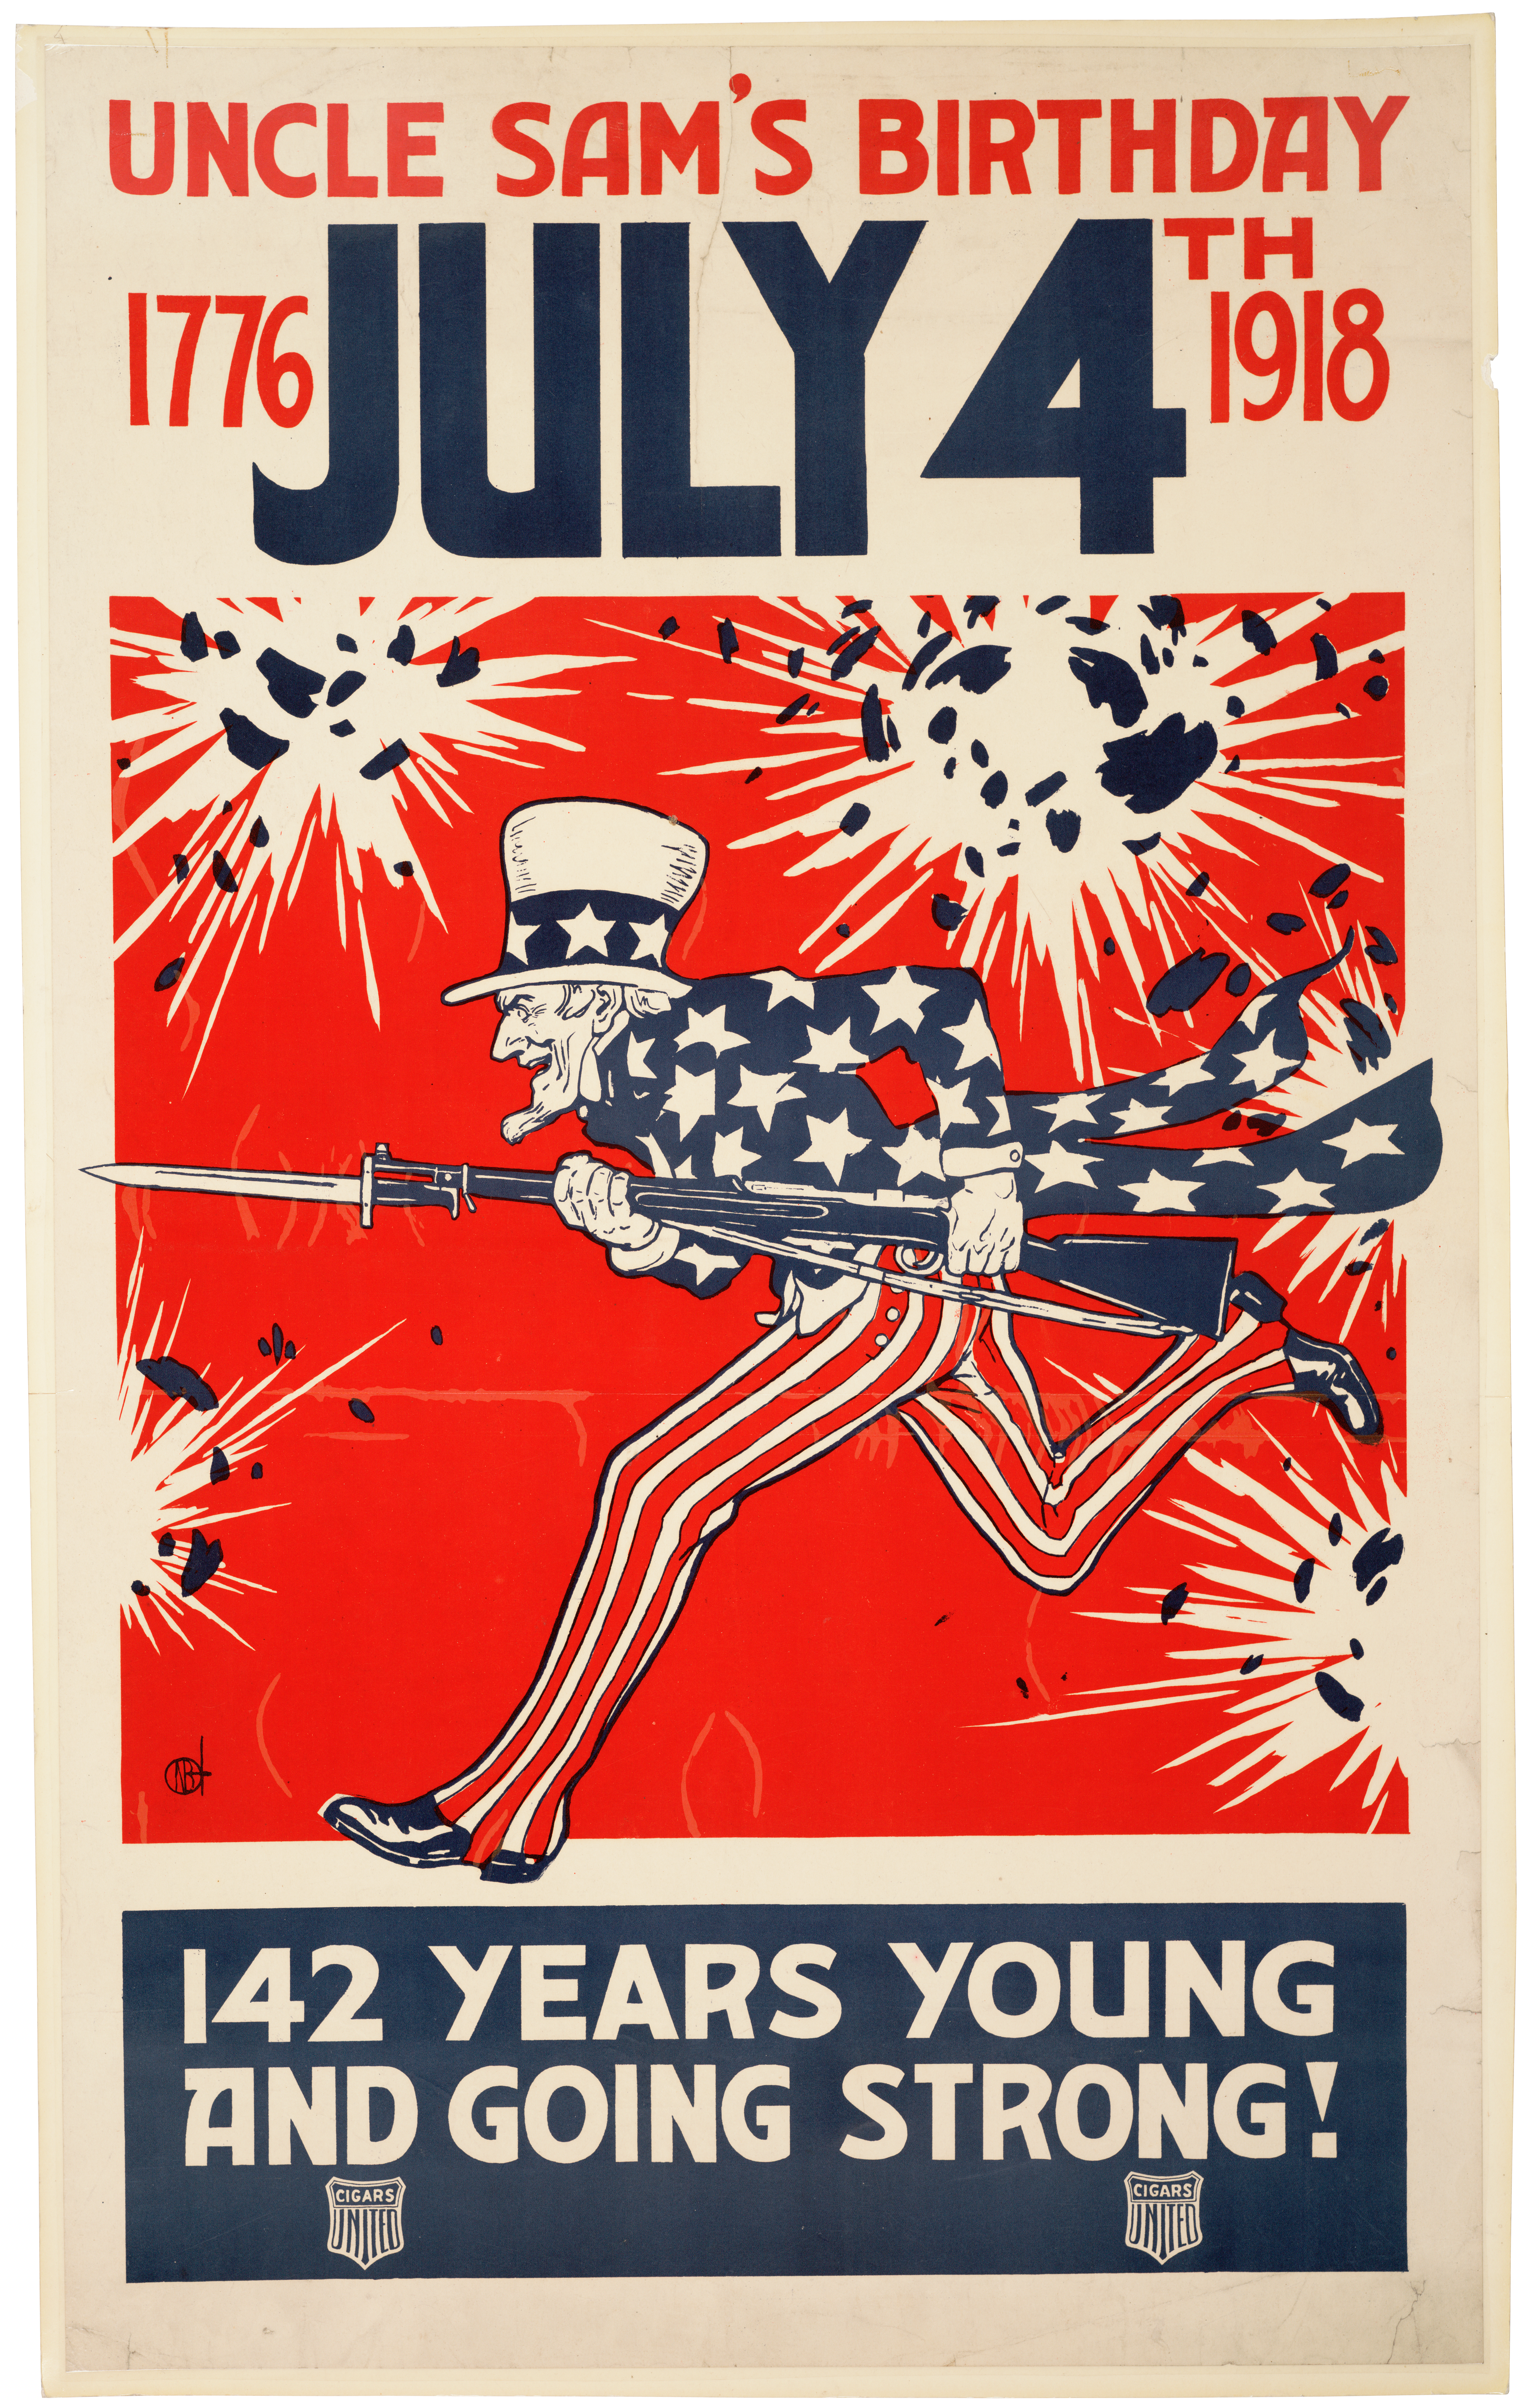 """World War I poster,""""Uncle Sam's Birthday. 1776- July 4th 1918. 142 Years Young and Going Strong,"""" 1918. (National Archives Identifier 512445)"""